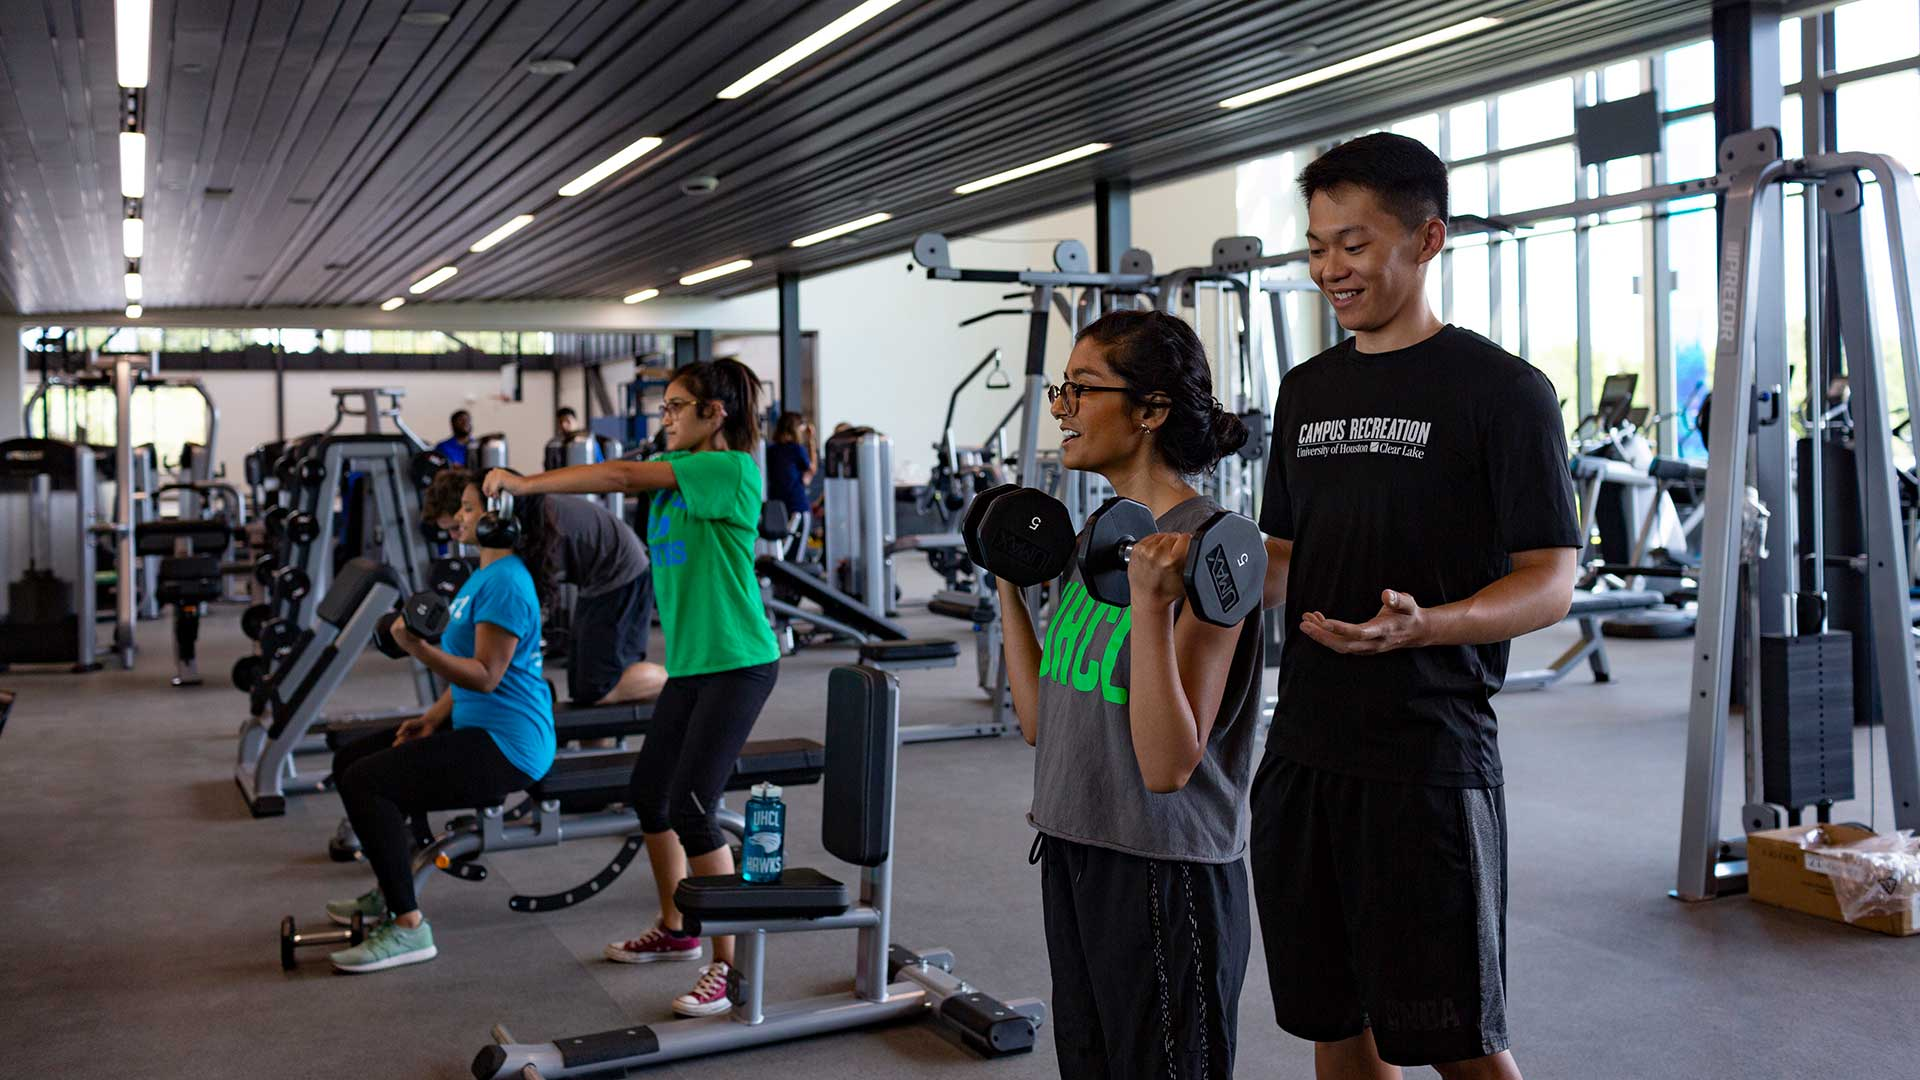 UHCL alumni invited to preview rec center for free